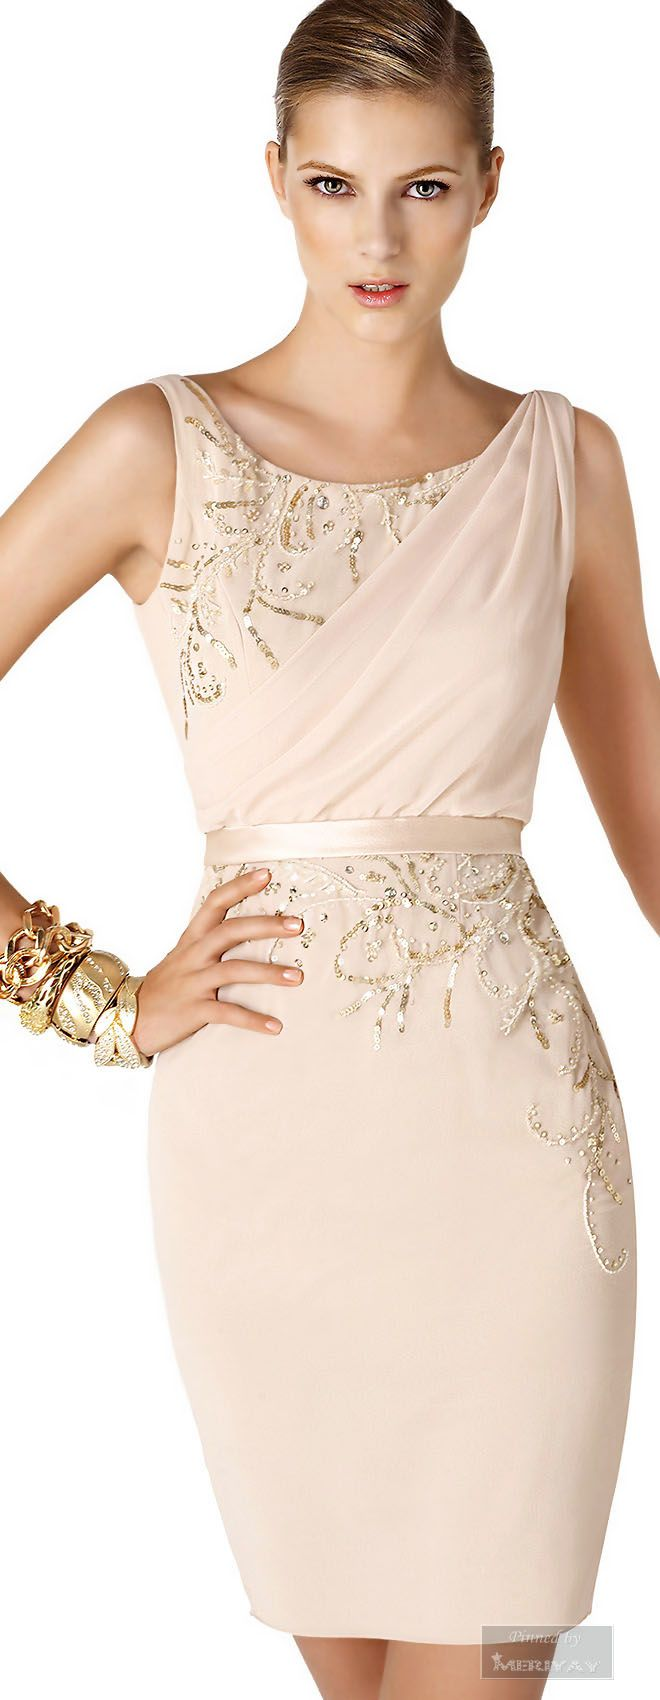 Women's fashion | Elegant sleeveless dress